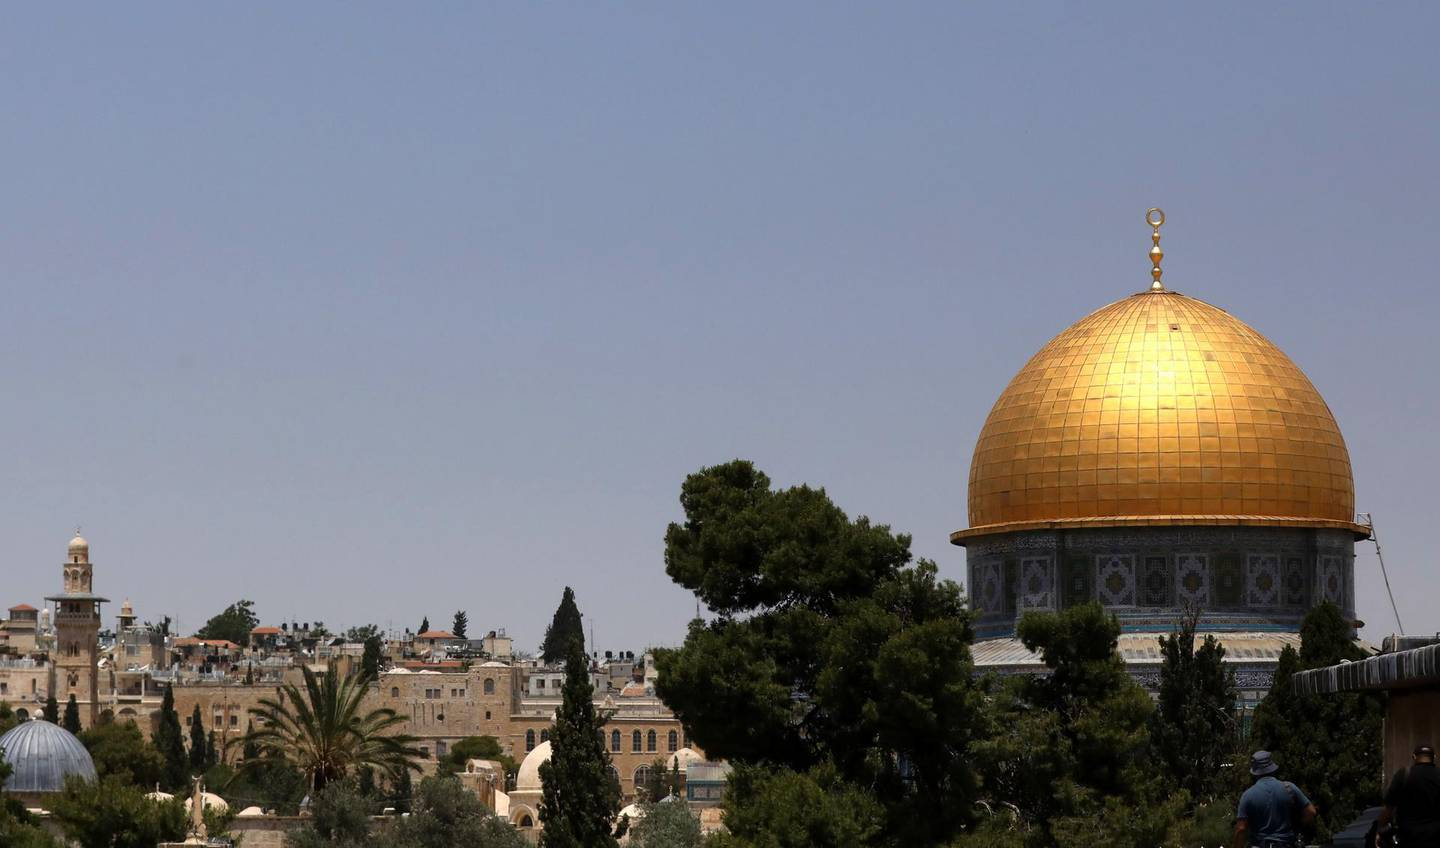 epa06747353 A General view of the Dome of the Rock at al-Aqsa mosque compound during the first Friday prayers of the Muslims' Holy month of Ramadan in Jerusalem, 18 May 2018. Israeli authorities allowed access to Jerusalem for women and children, limiting the age of men to those over 40. Muslims around the world celebrate the holy month of Ramadan by praying during the night time and abstaining from eating, drinking, and sexual acts daily between sunrise and sunset. Ramadan is the ninth month in the Islamic calendar and it is believed that the Koran's first verse was revealed during its last 10 nights.  EPA/ALAA BADARNEH